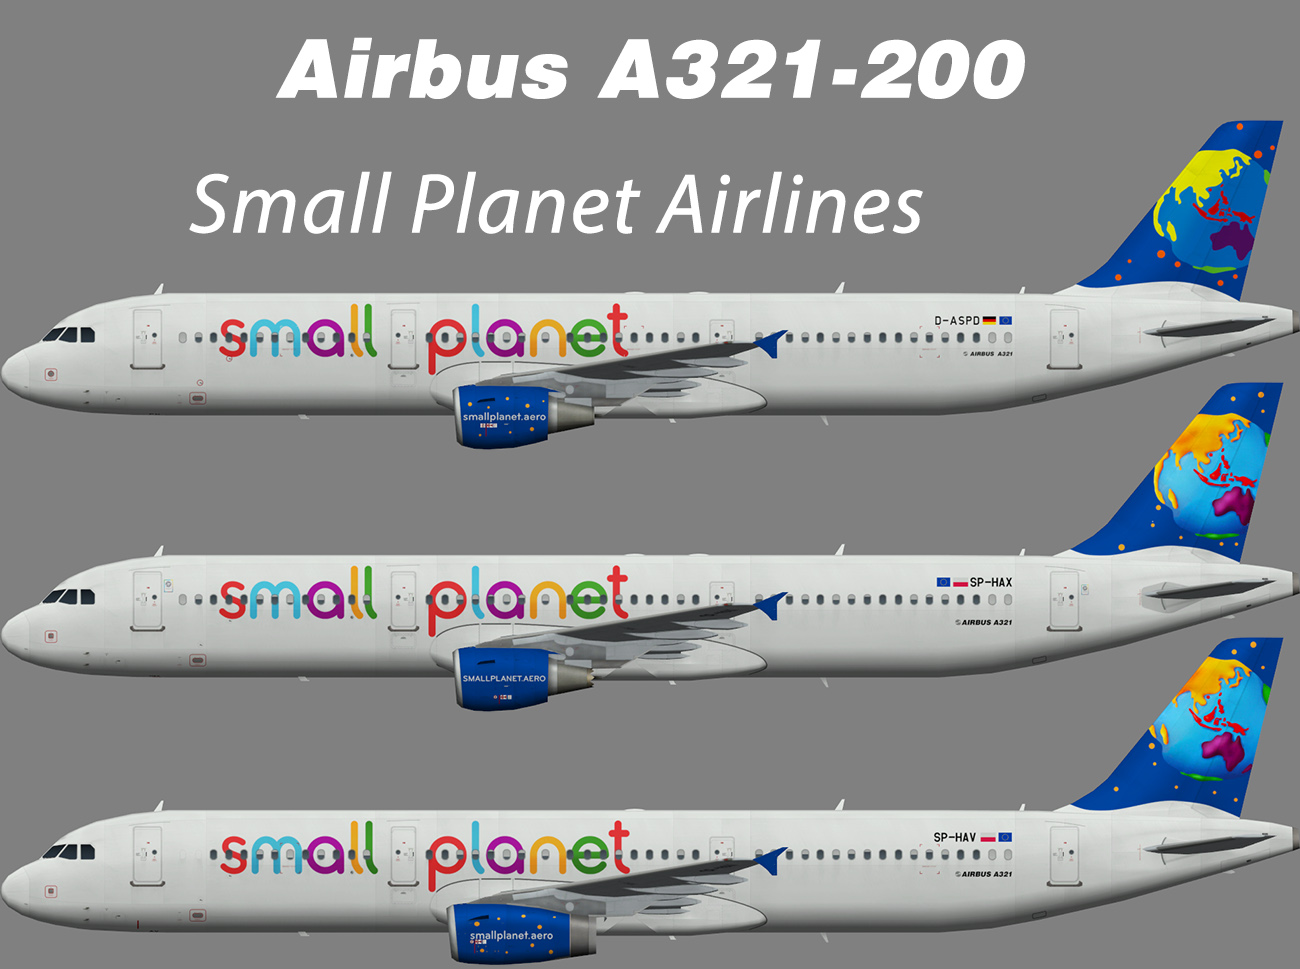 Small Planet Airlines Airbus A321-200 – Nils